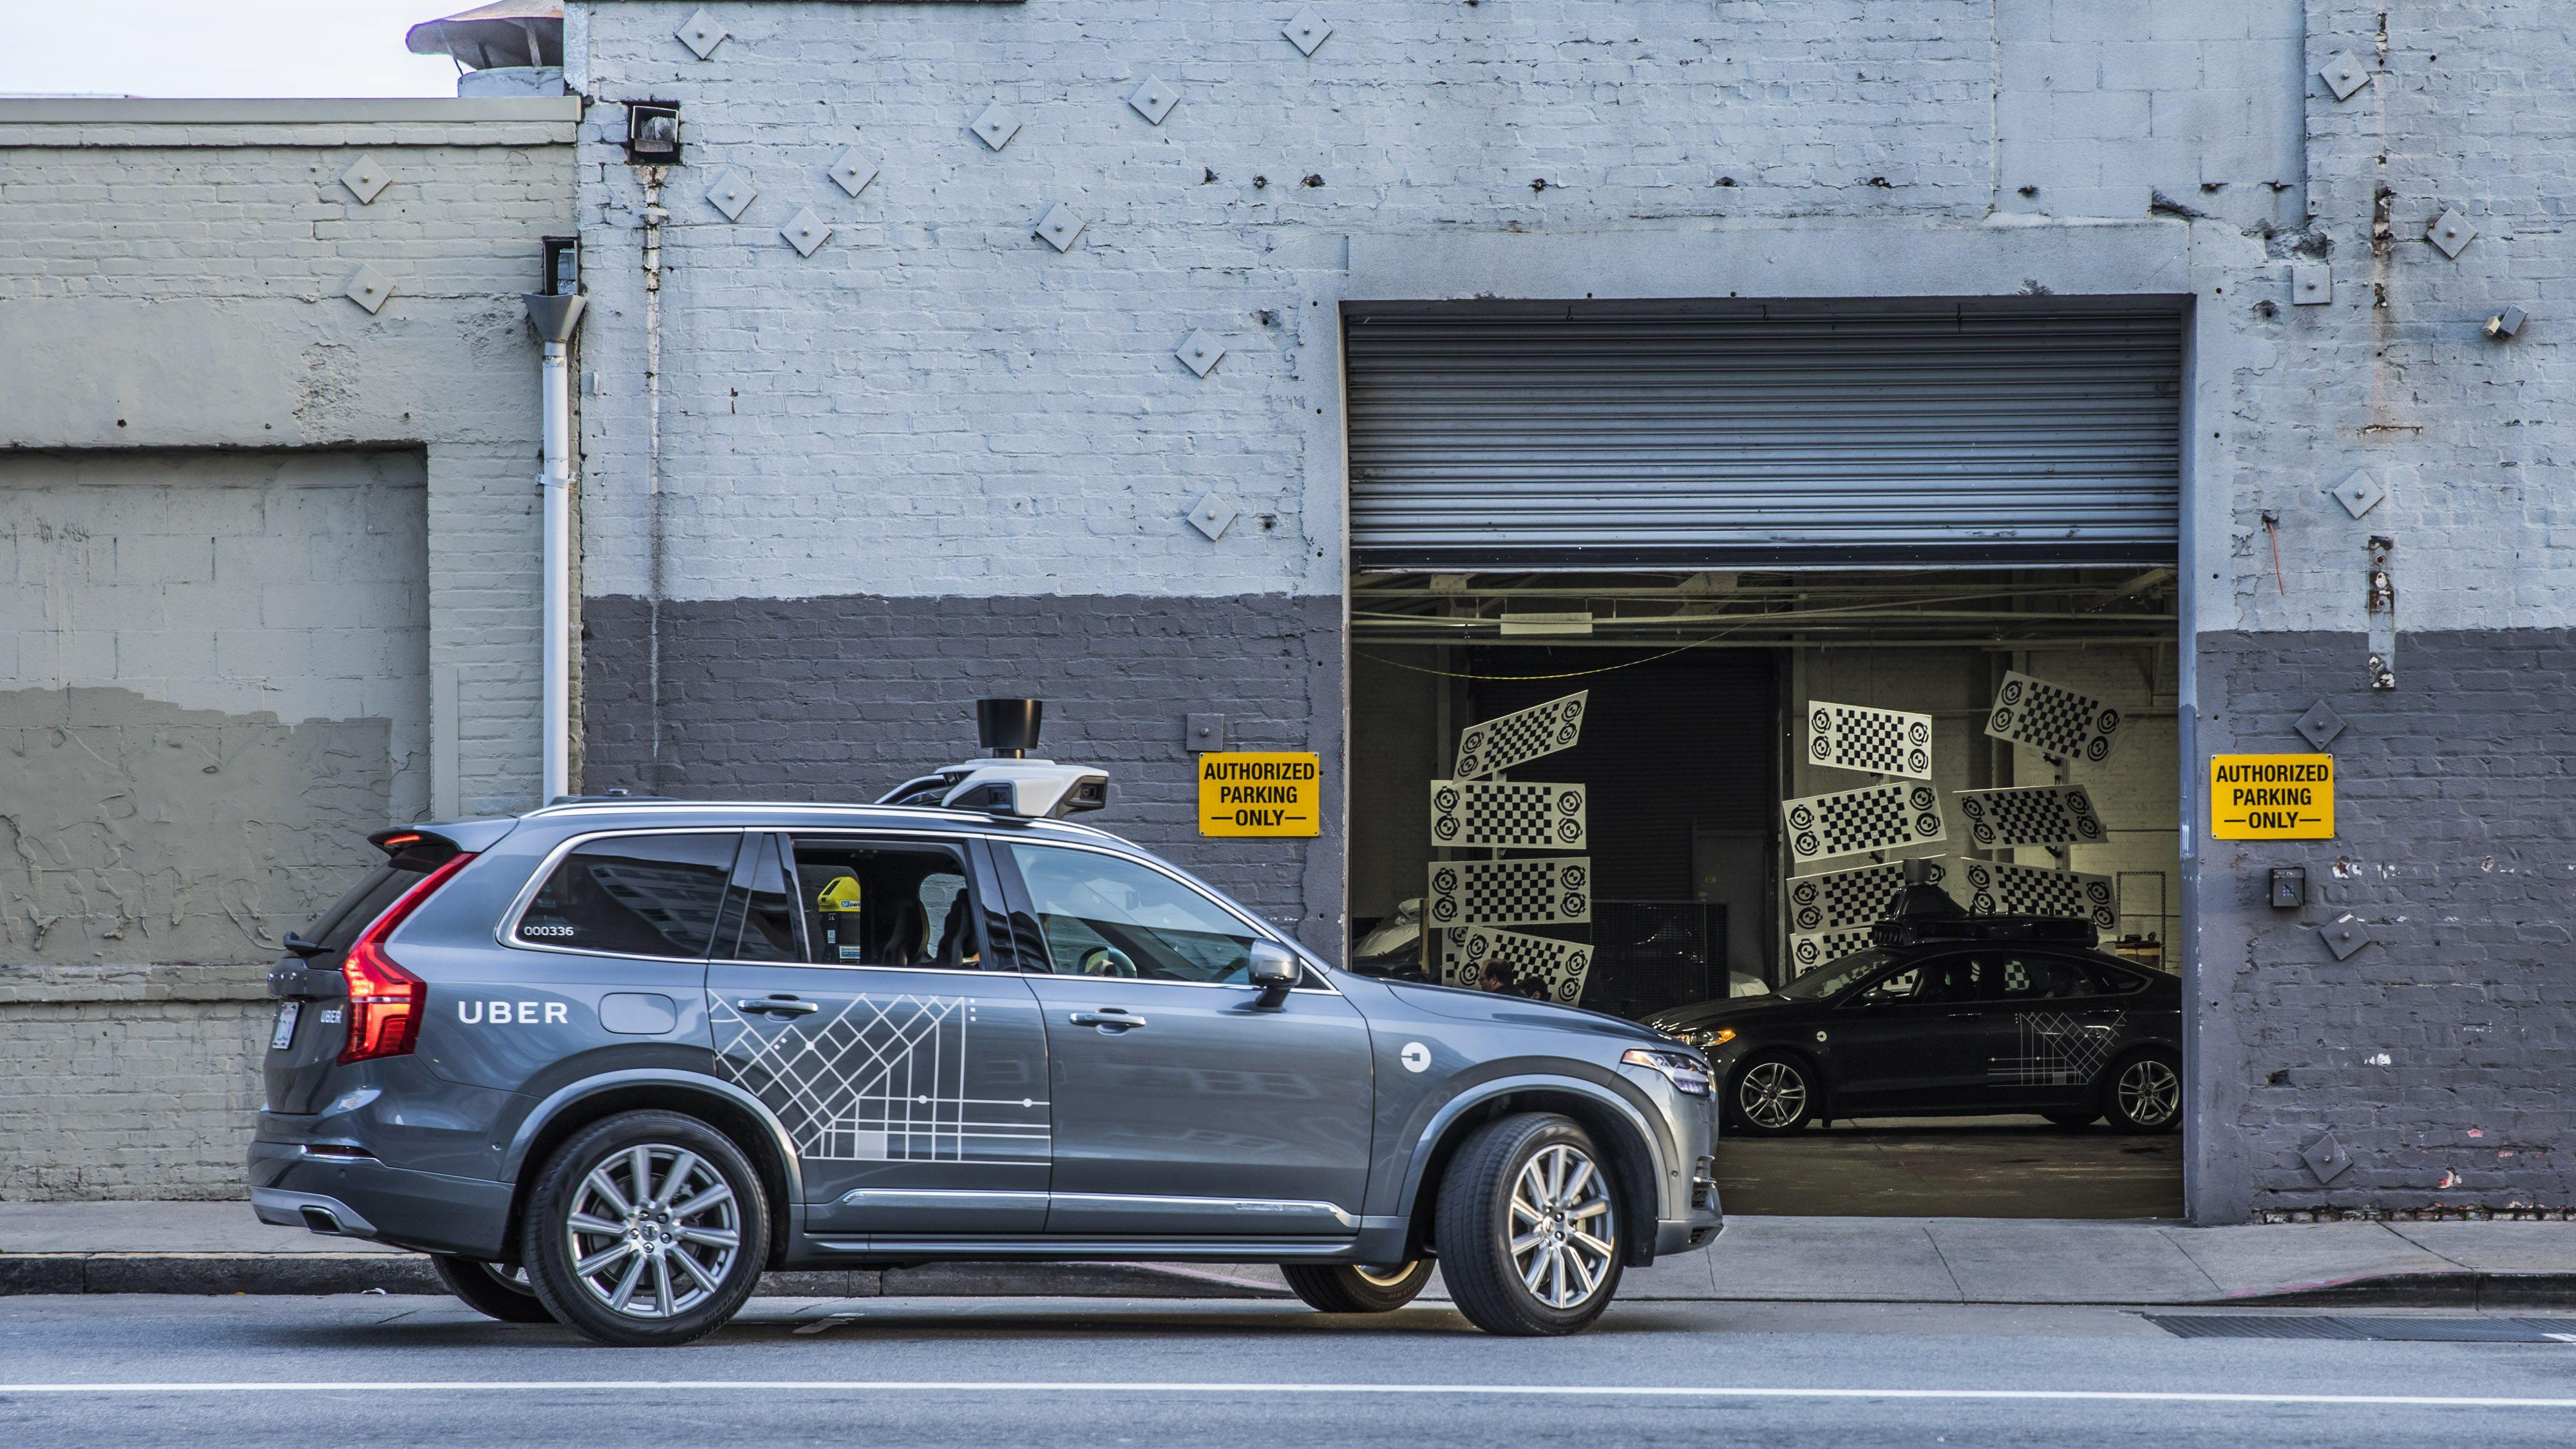 uber-mapping-car-7174